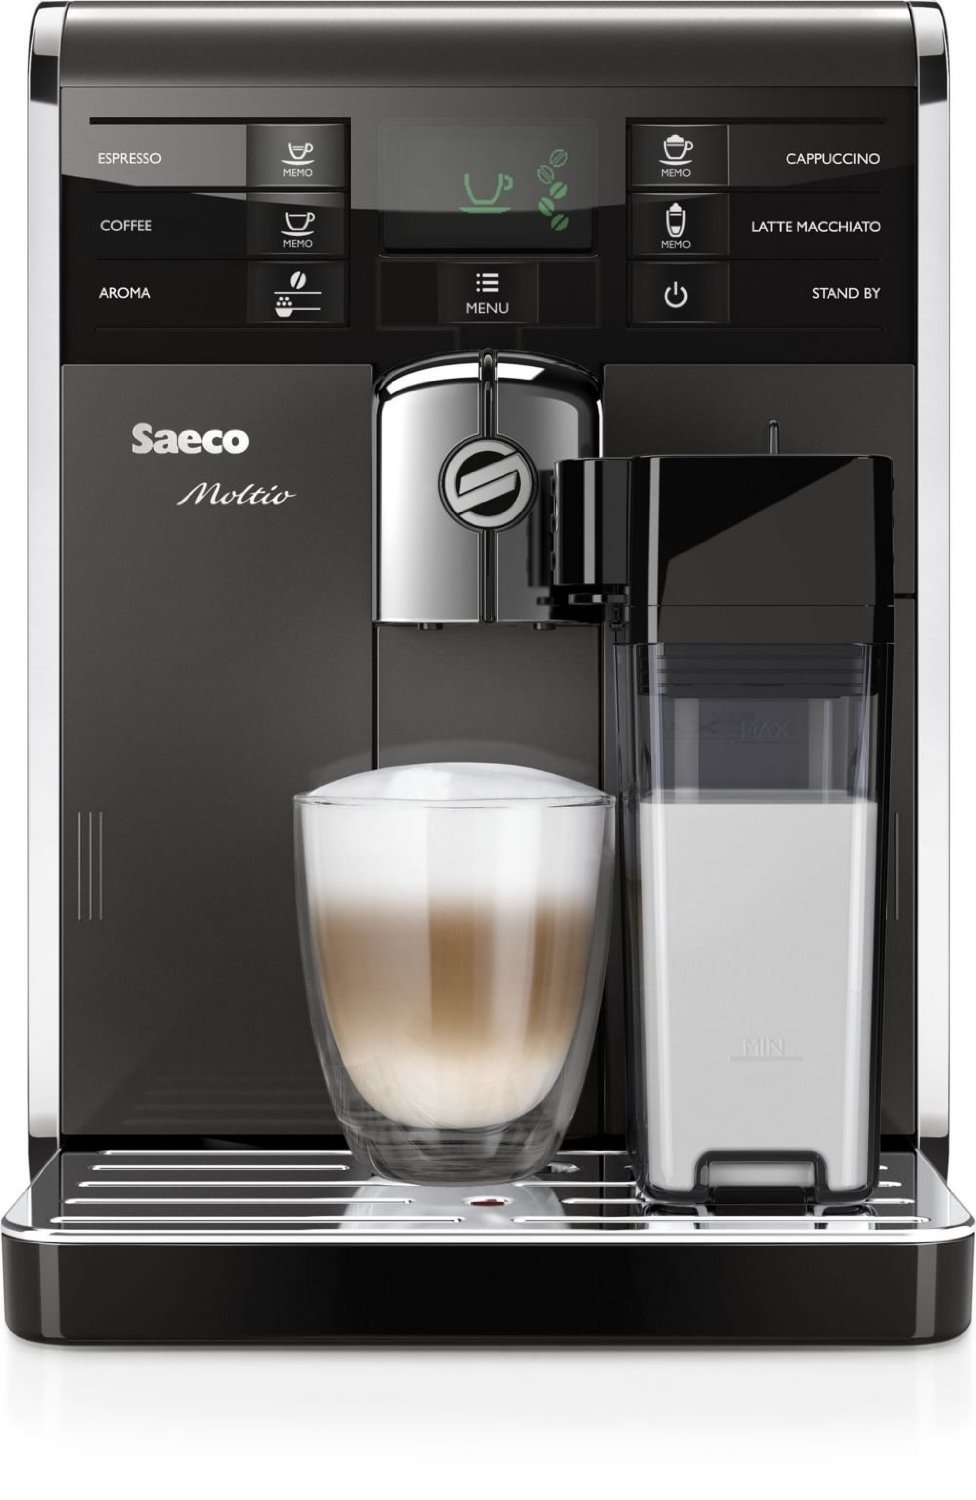 saeco phillips superautomatic espresso machine reviews. Black Bedroom Furniture Sets. Home Design Ideas